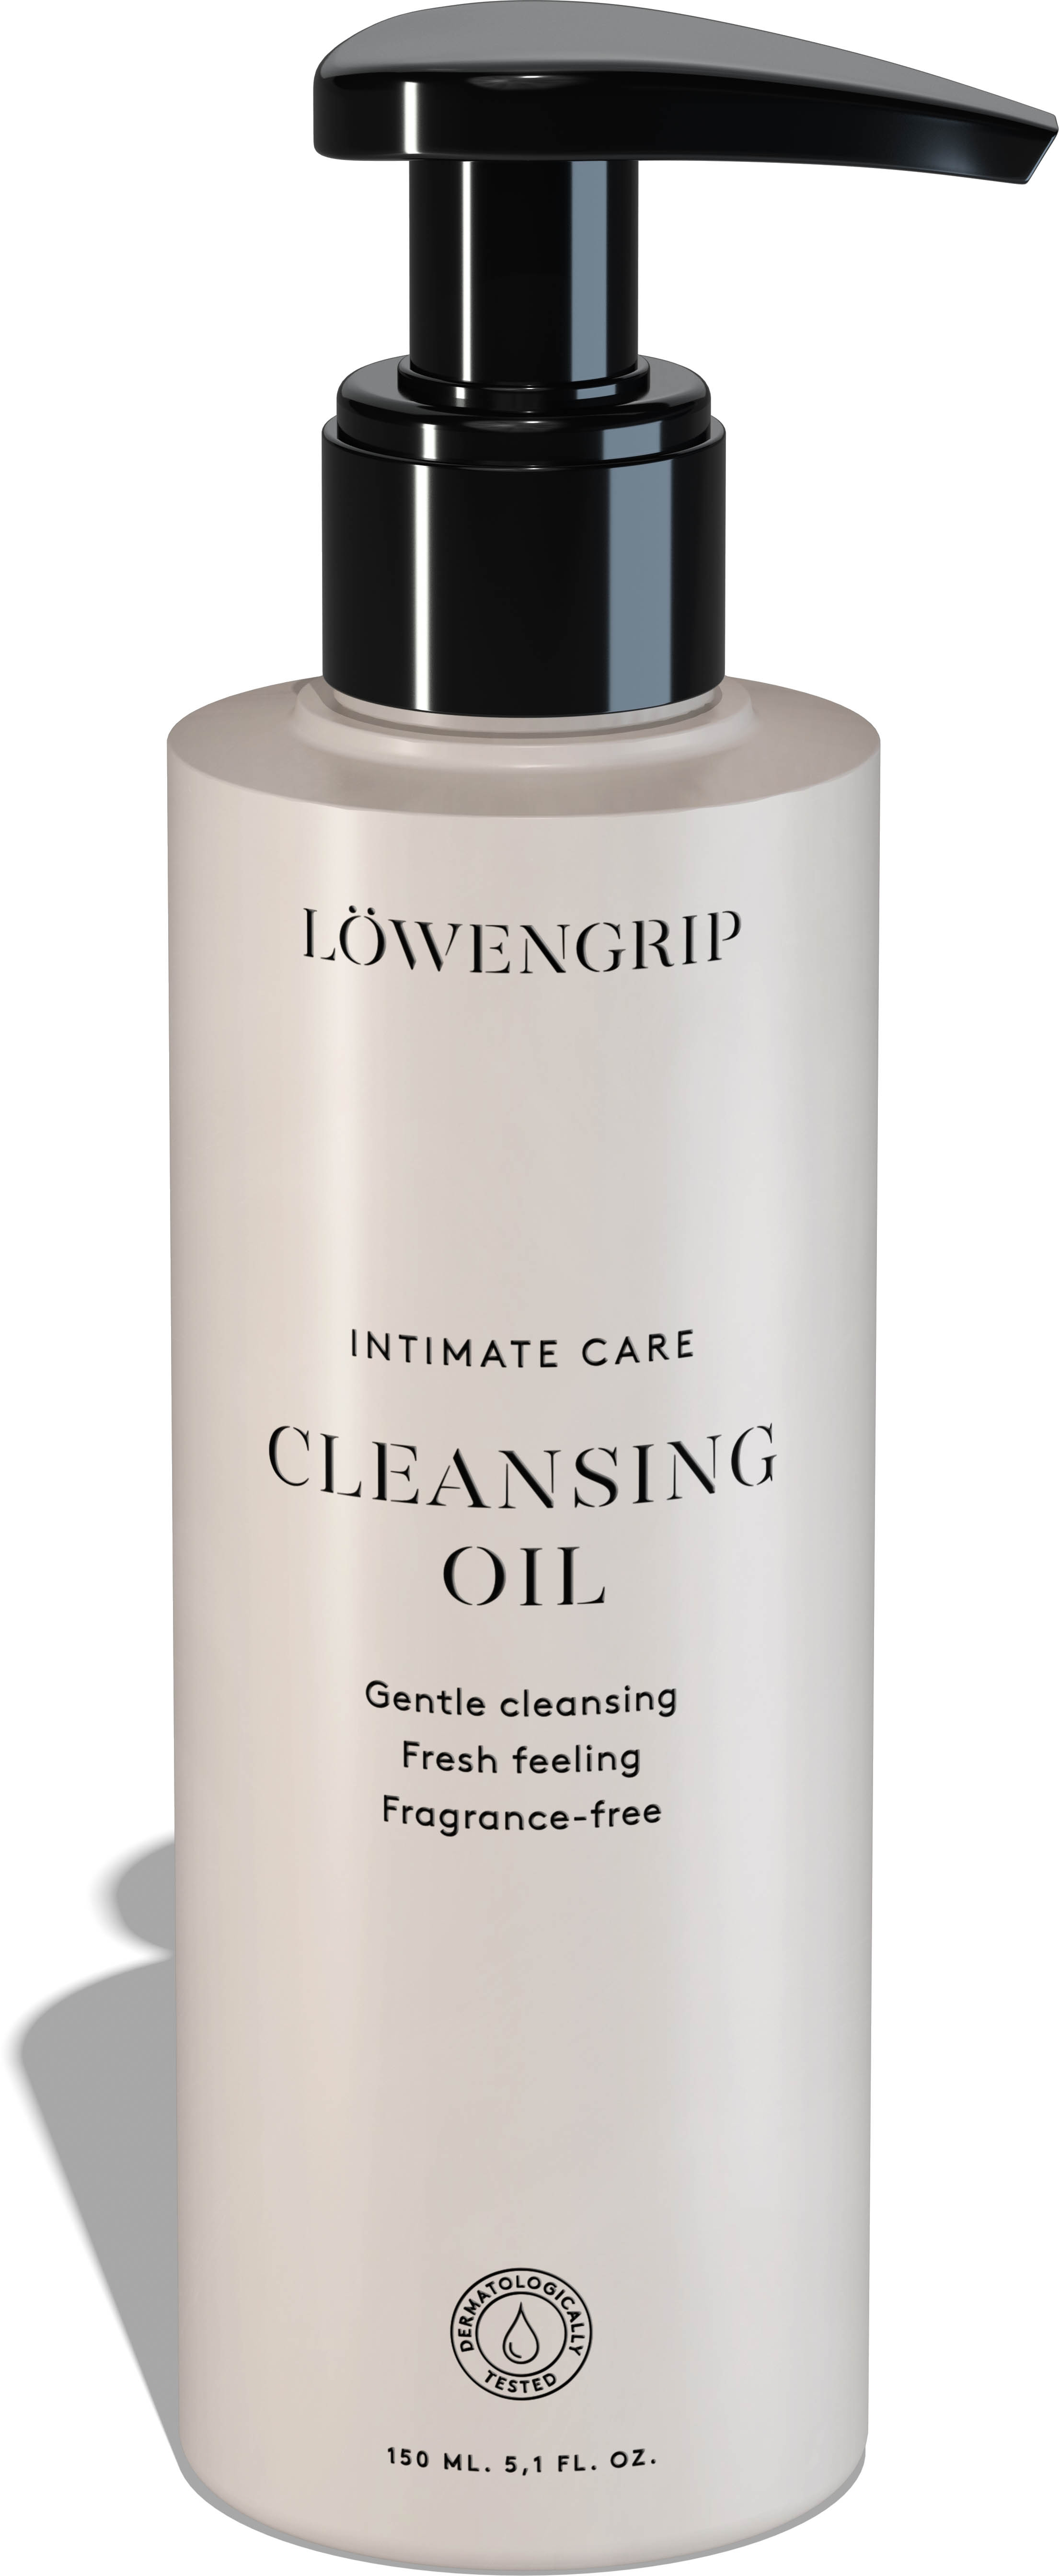 Intimate Care - Cleansing Oil 150ml